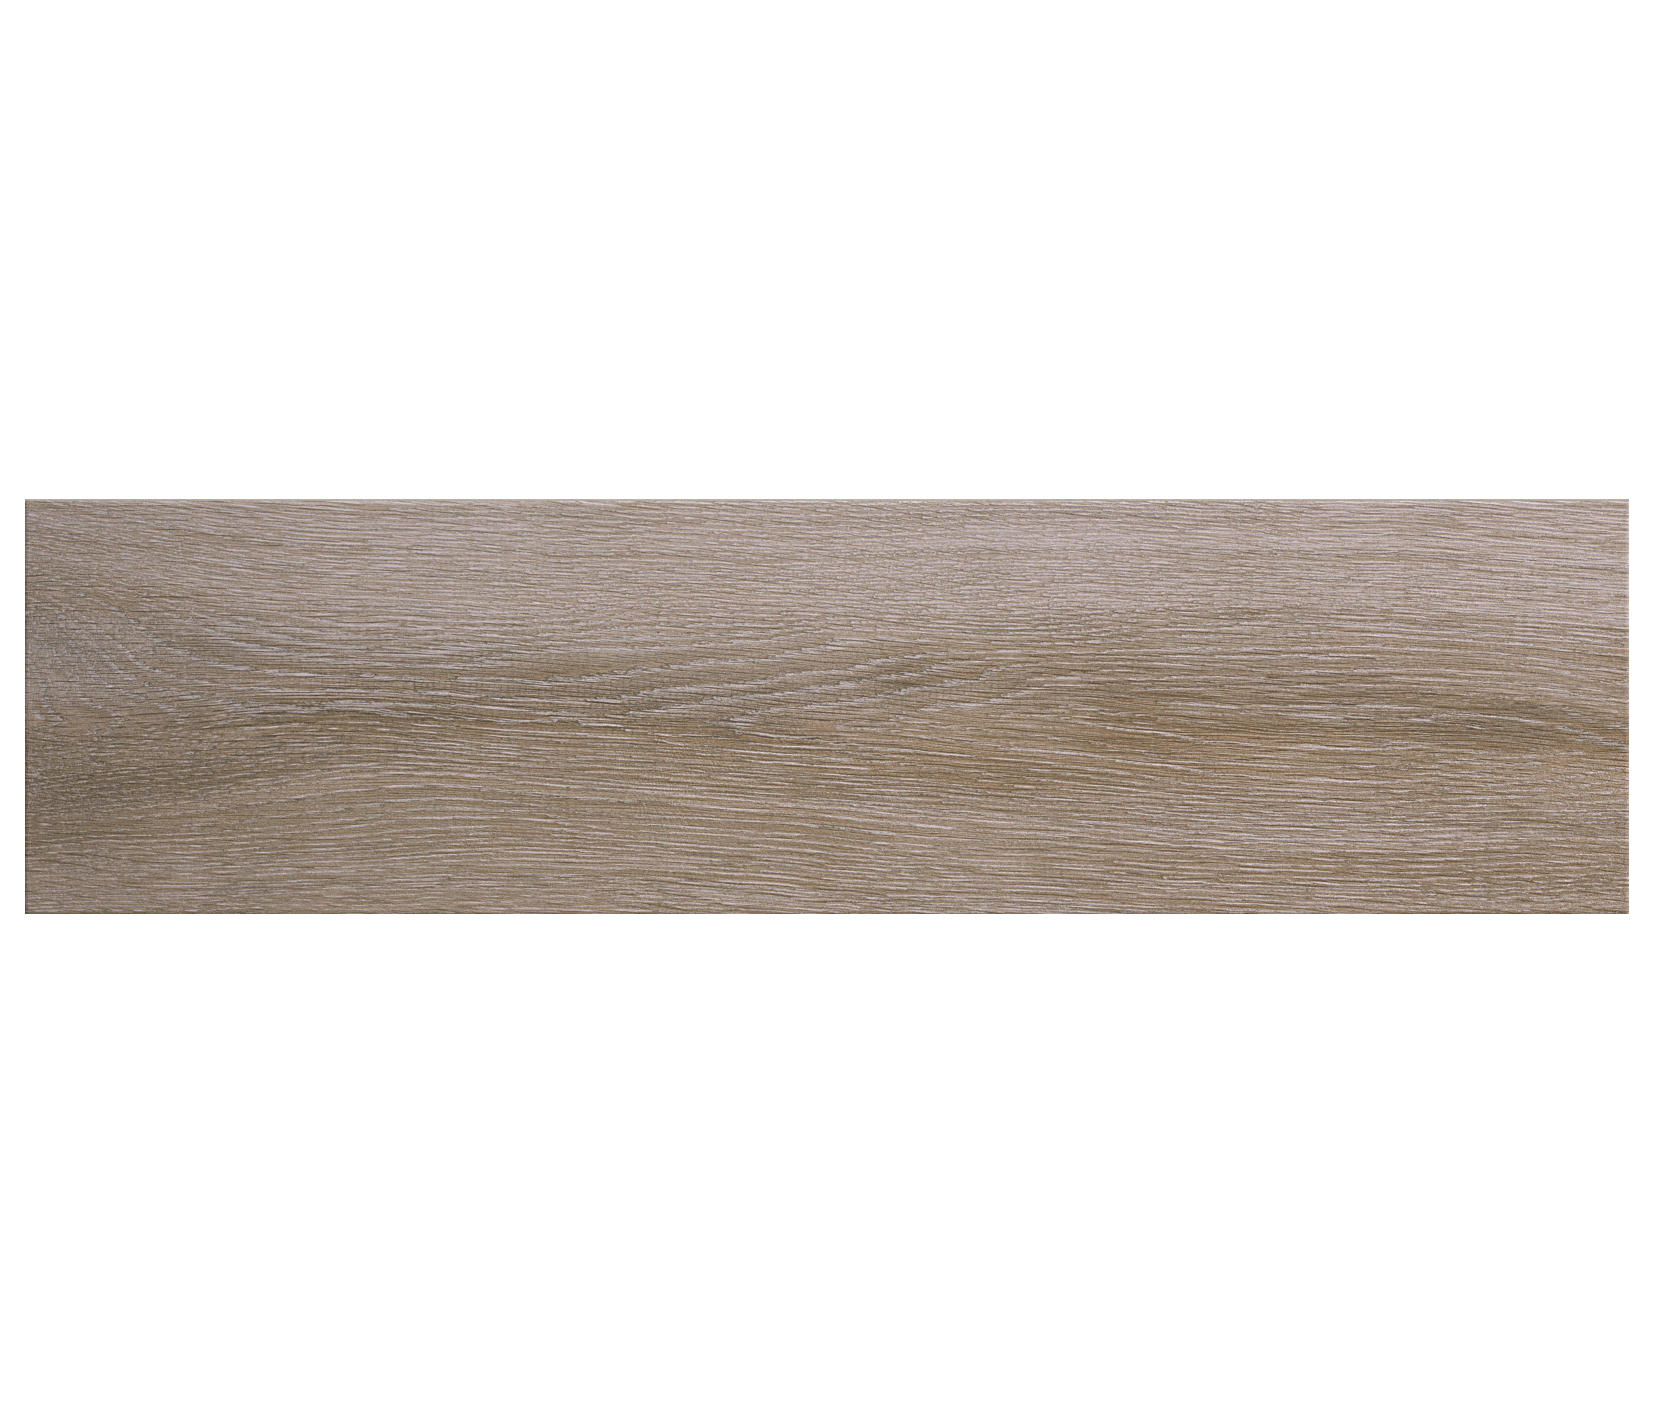 Aosta aosta argent tiles from dune cer mica architonic - Dune ceramica ...